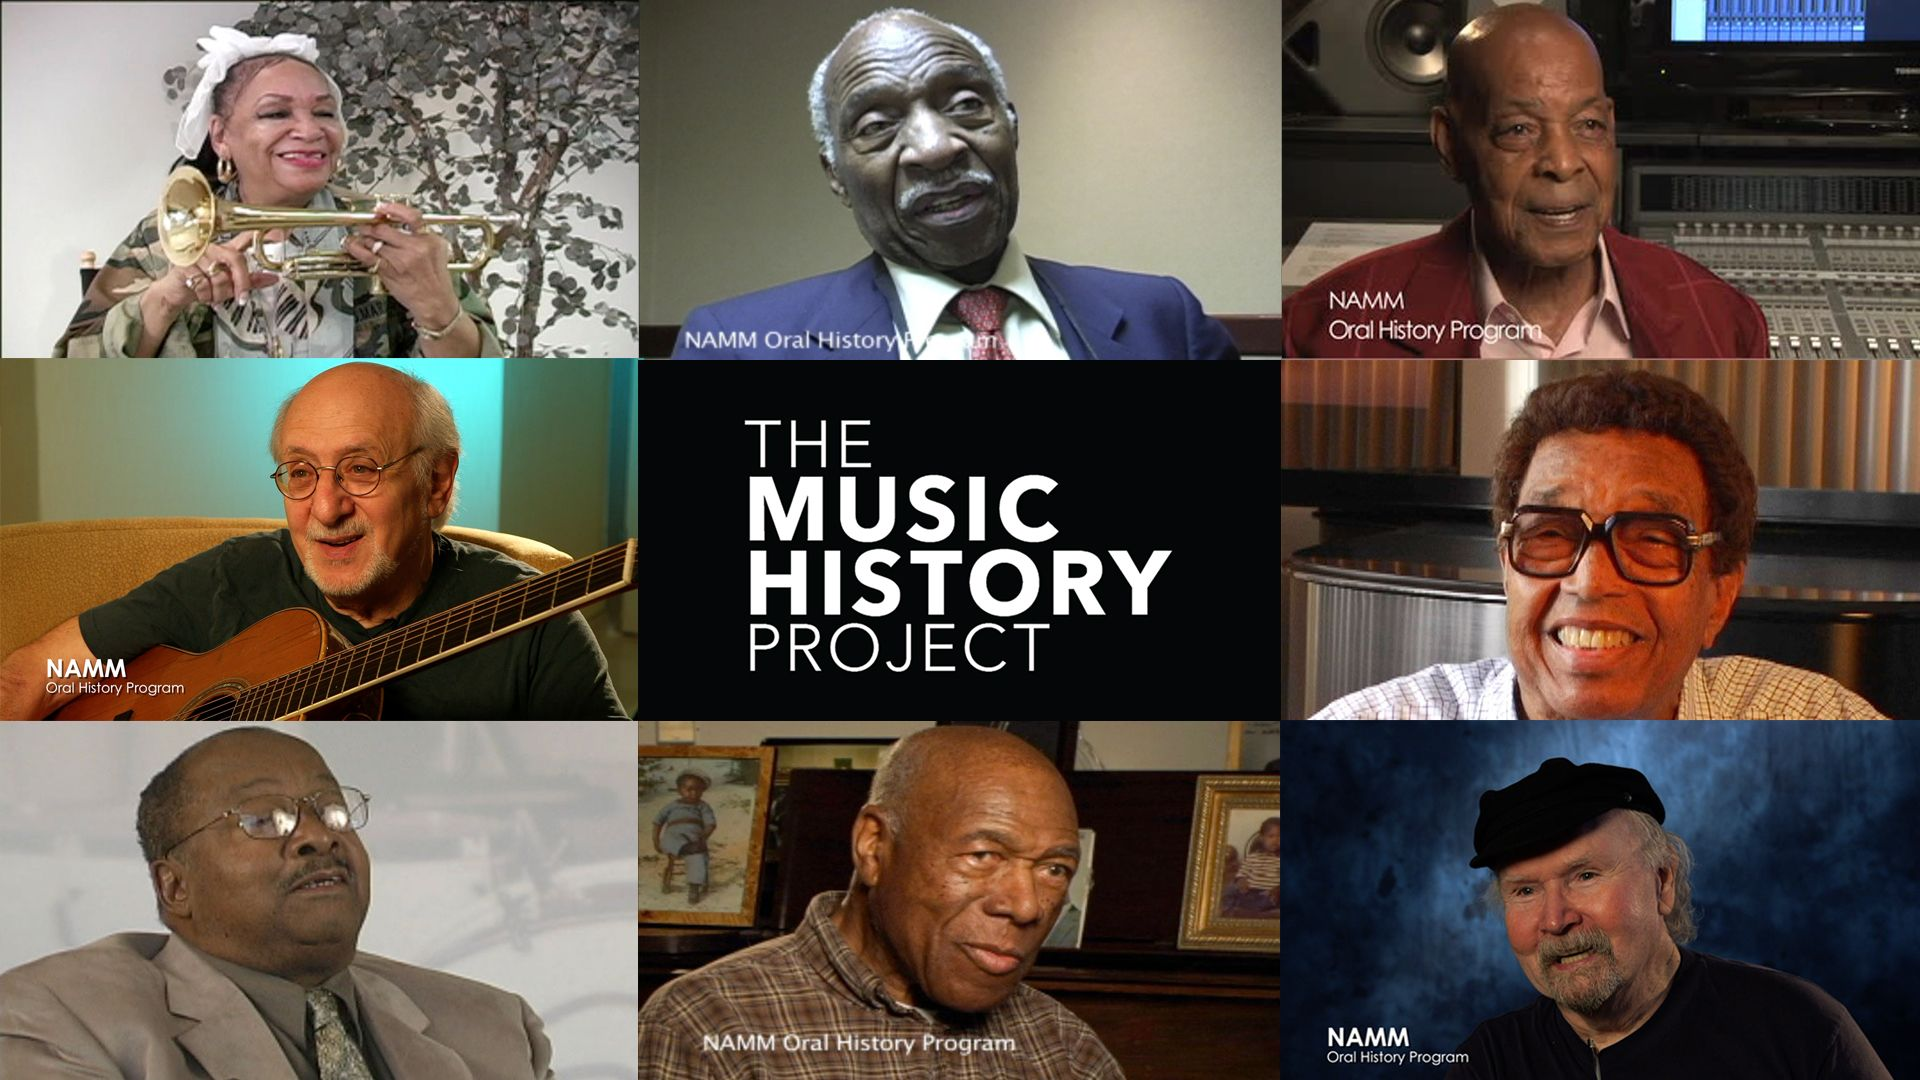 TMHP: Music in the Civil Rights Movement